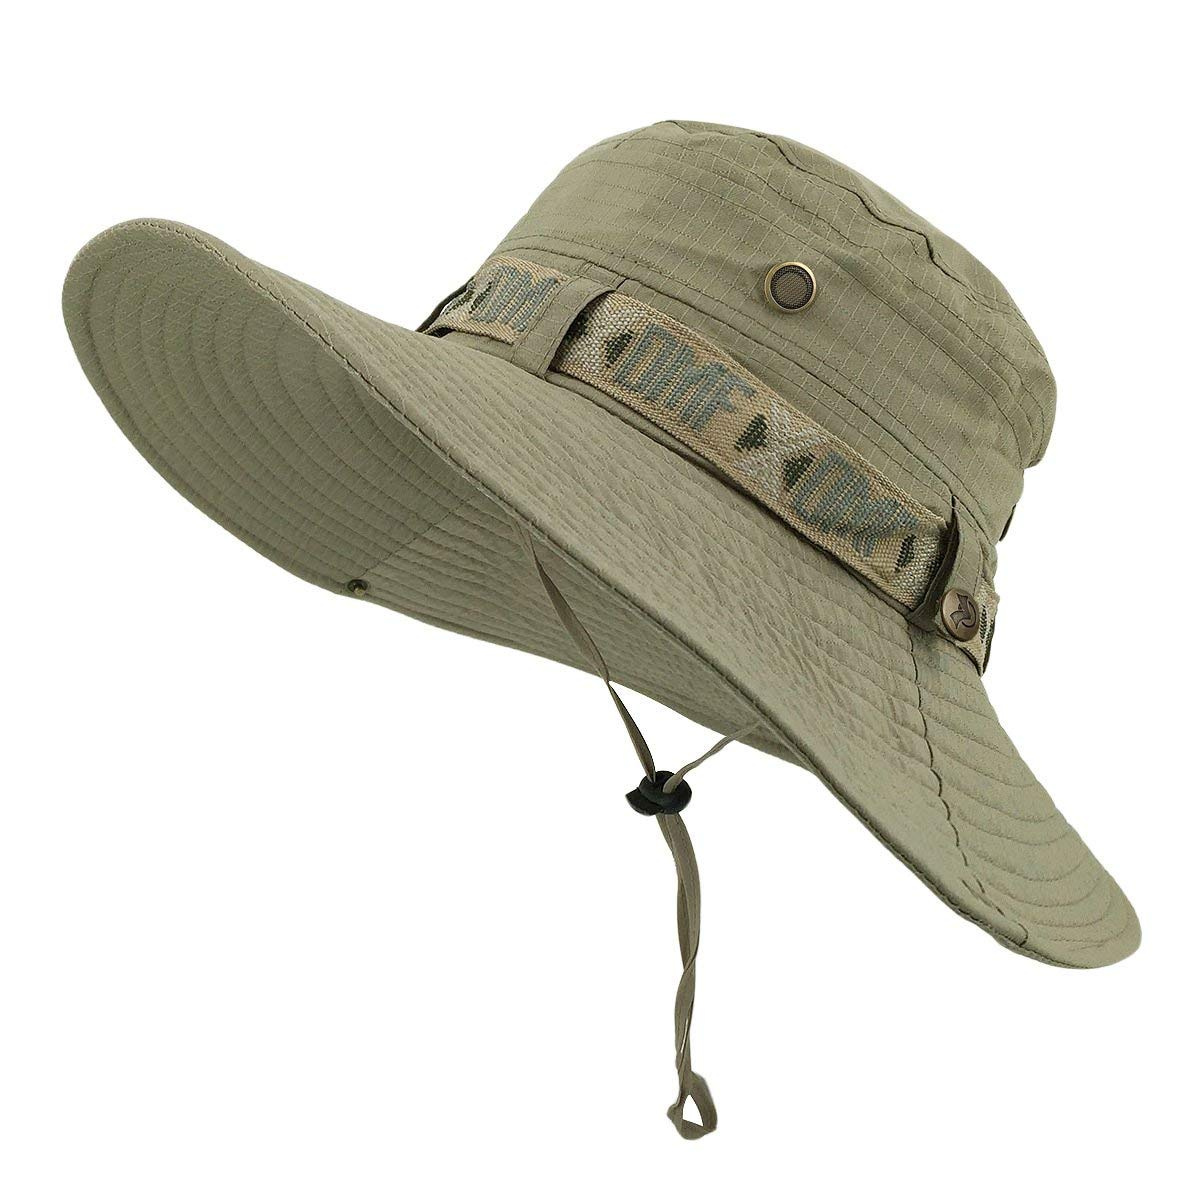 f713ed425aaa53 Safari Sports Sports & Outdoors: Buy Online from Fishpond.co.nz